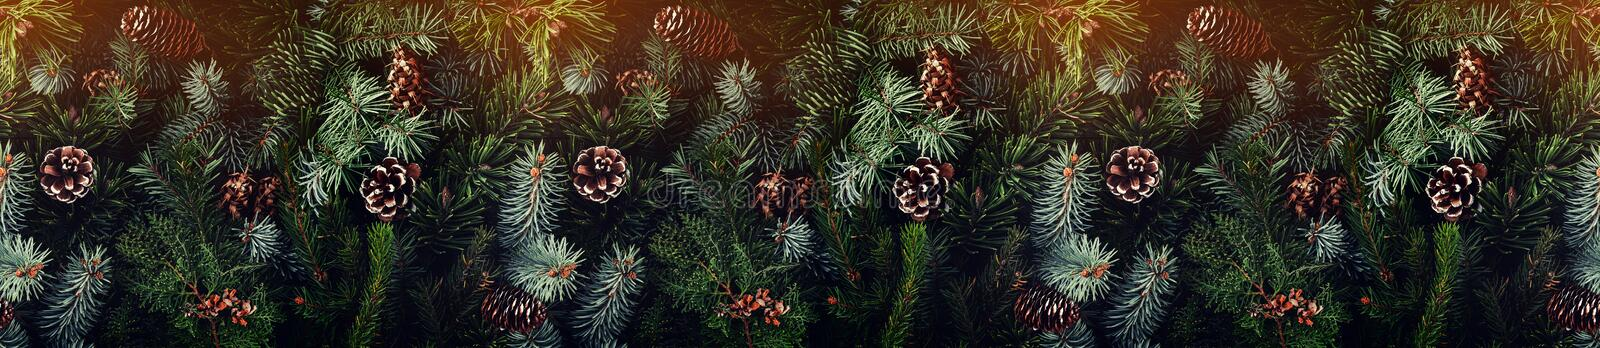 Holiday background of Christmas tree branches, spruce, juniper, fir, larch, pine cones with light. Xmas and New Year theme. Flat lay, top view, wide royalty free stock image